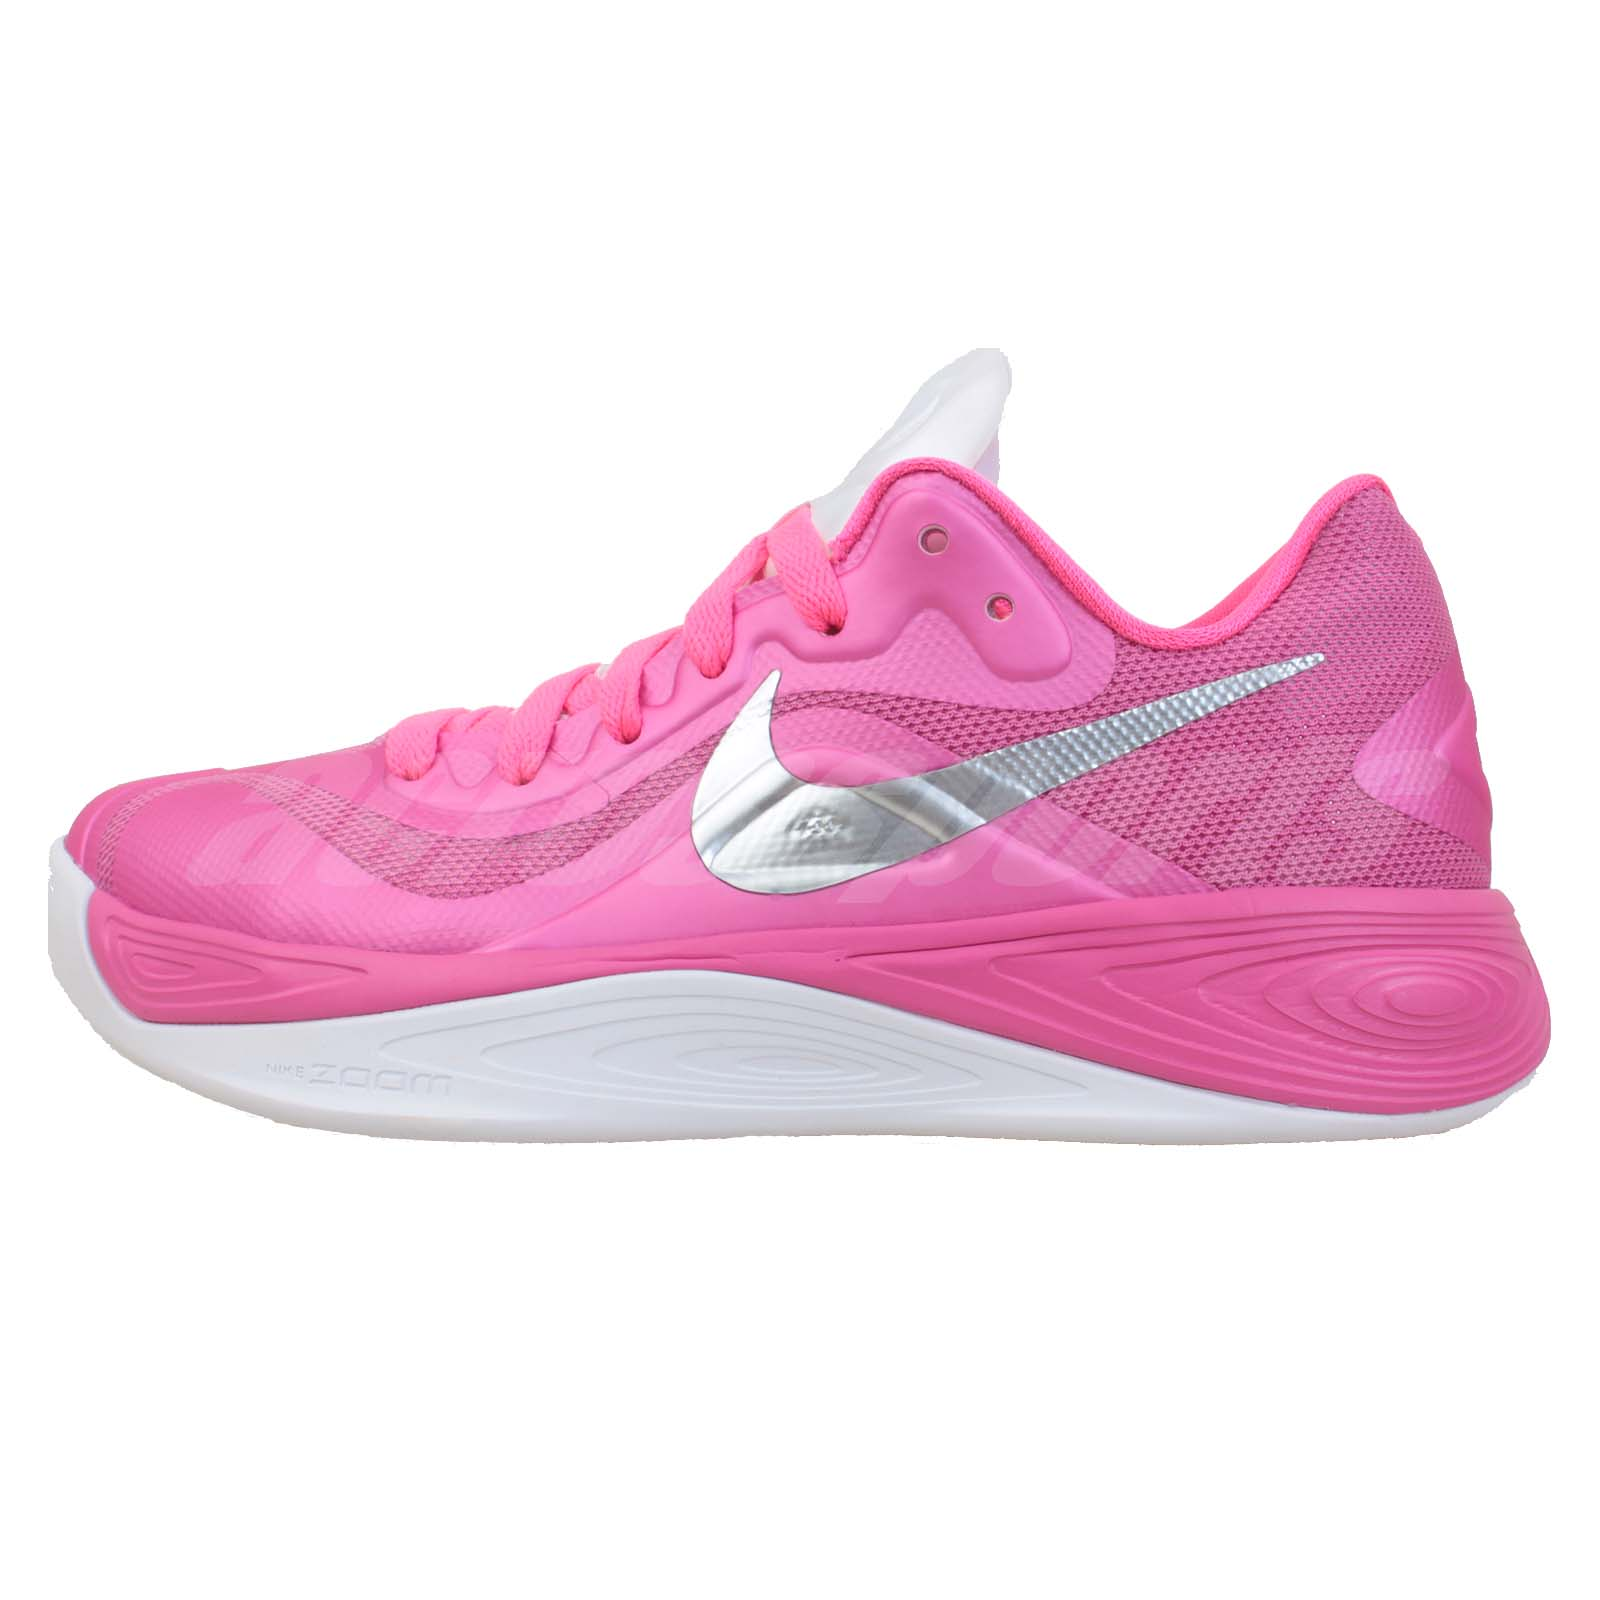 Breast Cancer Basketball Shoes